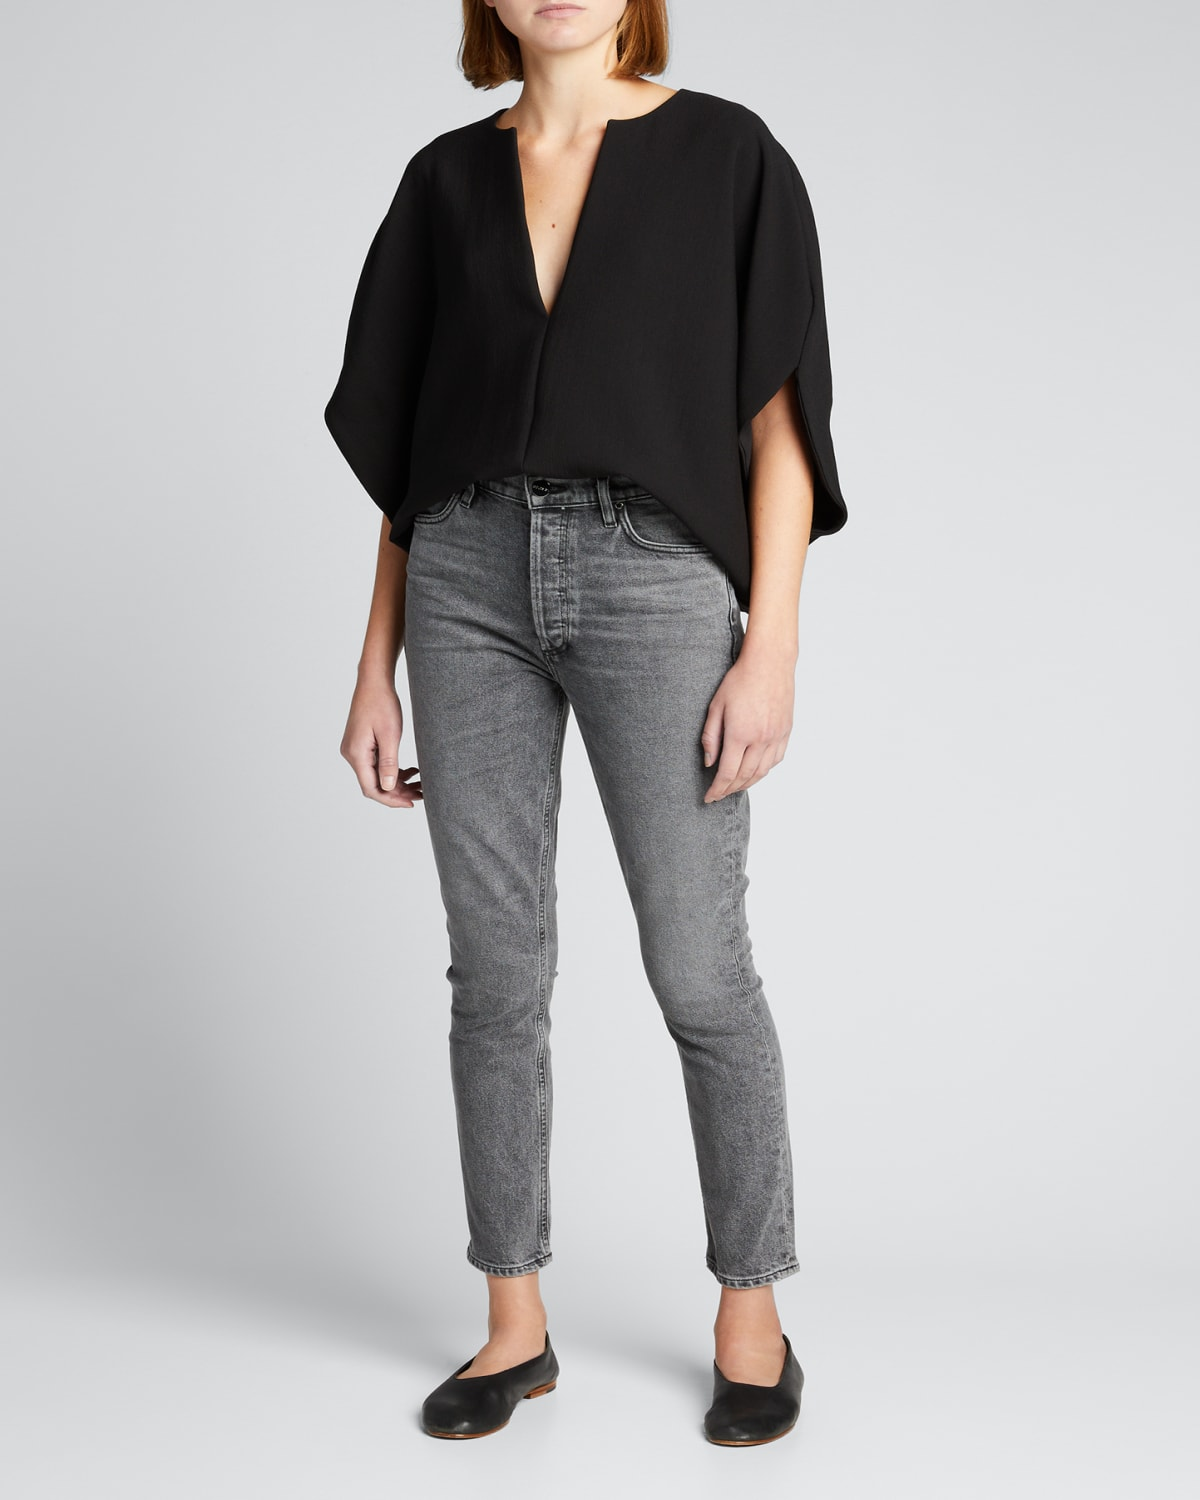 The High-Rise Slim Ankle Jeans